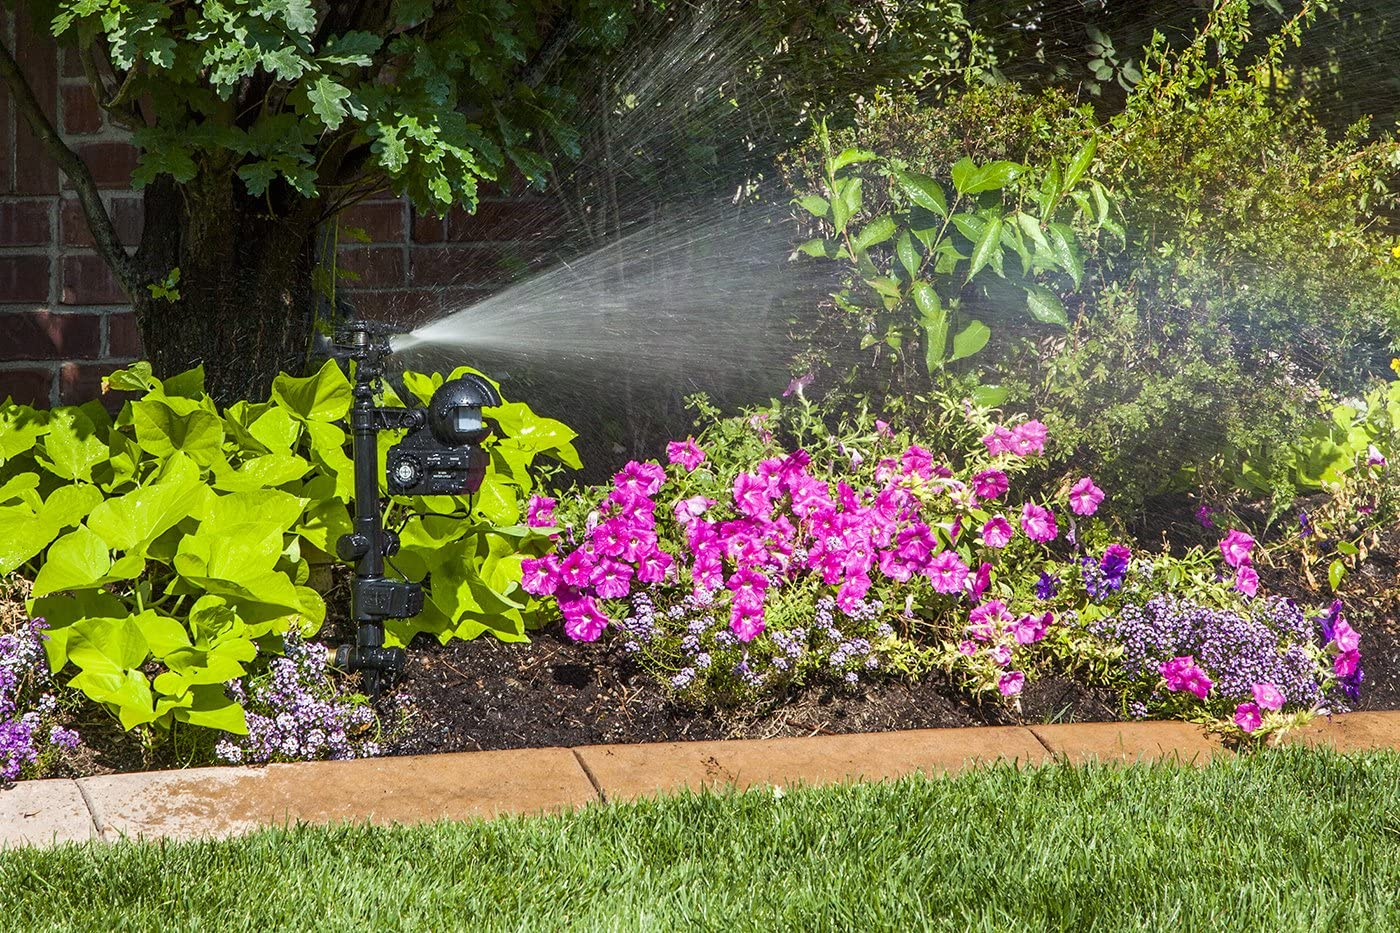 Orbit 62100 Yard Enforcer Motion-Activated Sprinkler with Day & Night Detection Modes Review